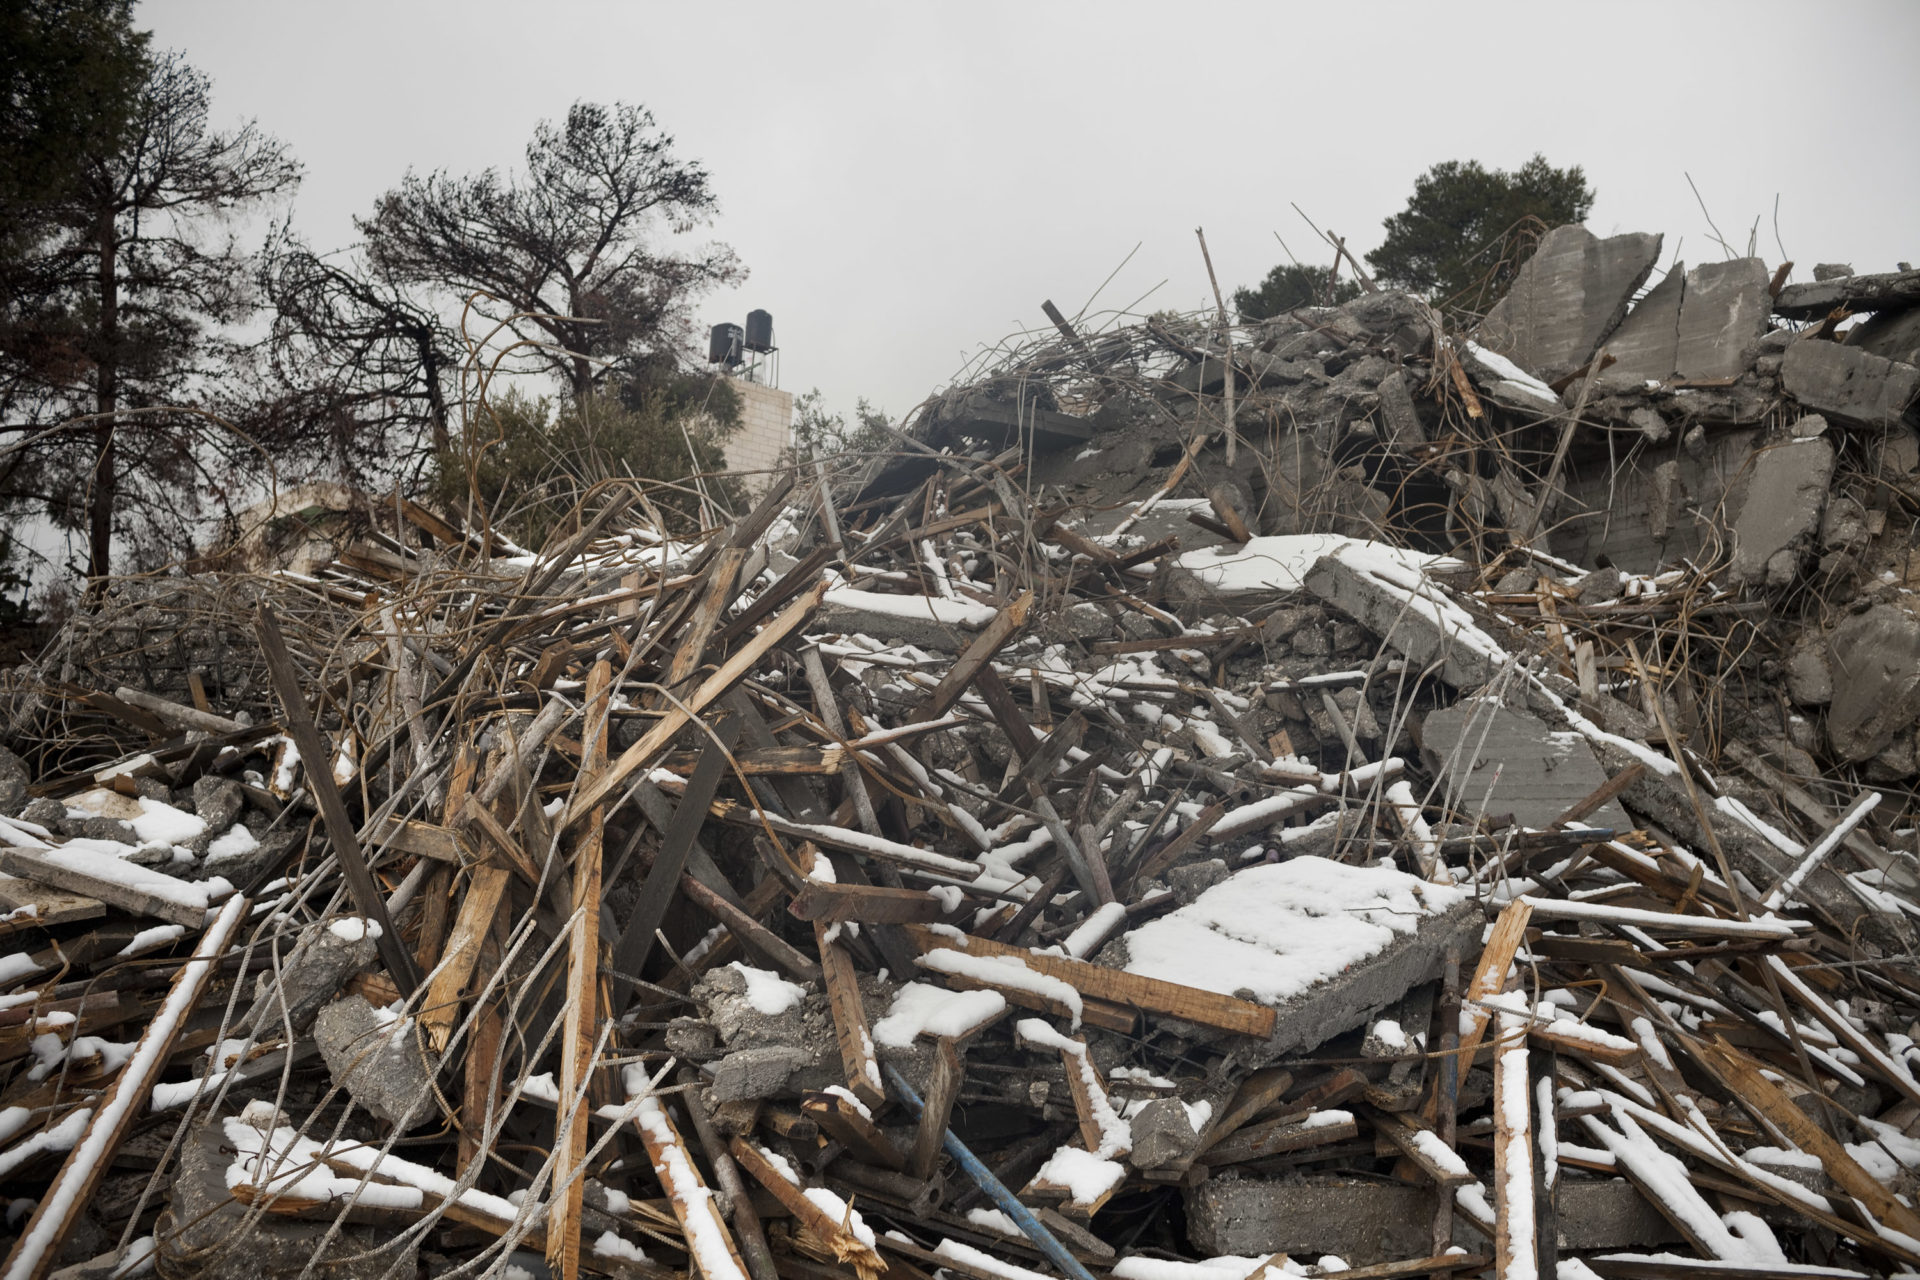 Snow falls of the ruins of a house demolished by the municipality of Jerusalem in Ras al-Amoud, a few hundred meters down the road from the Mount of Olives.